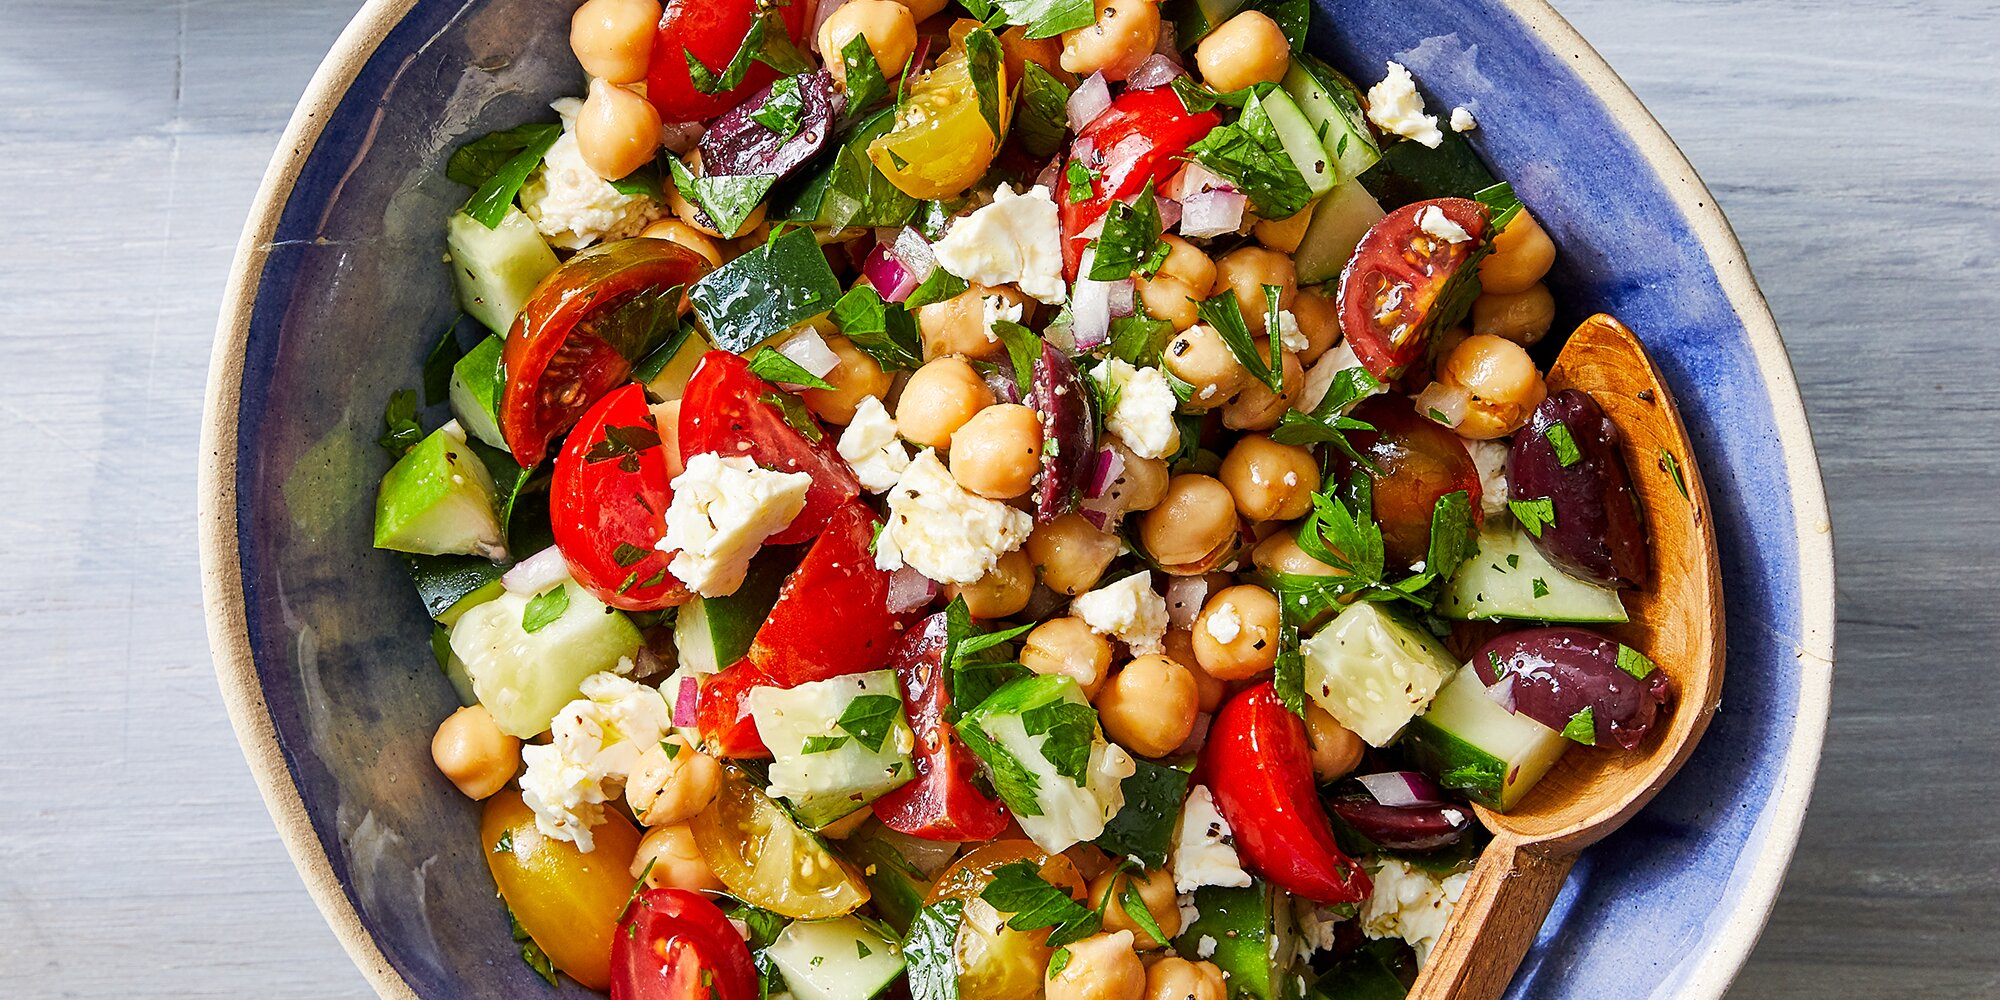 Chopped Salad with Chickpeas, Olives & Feta